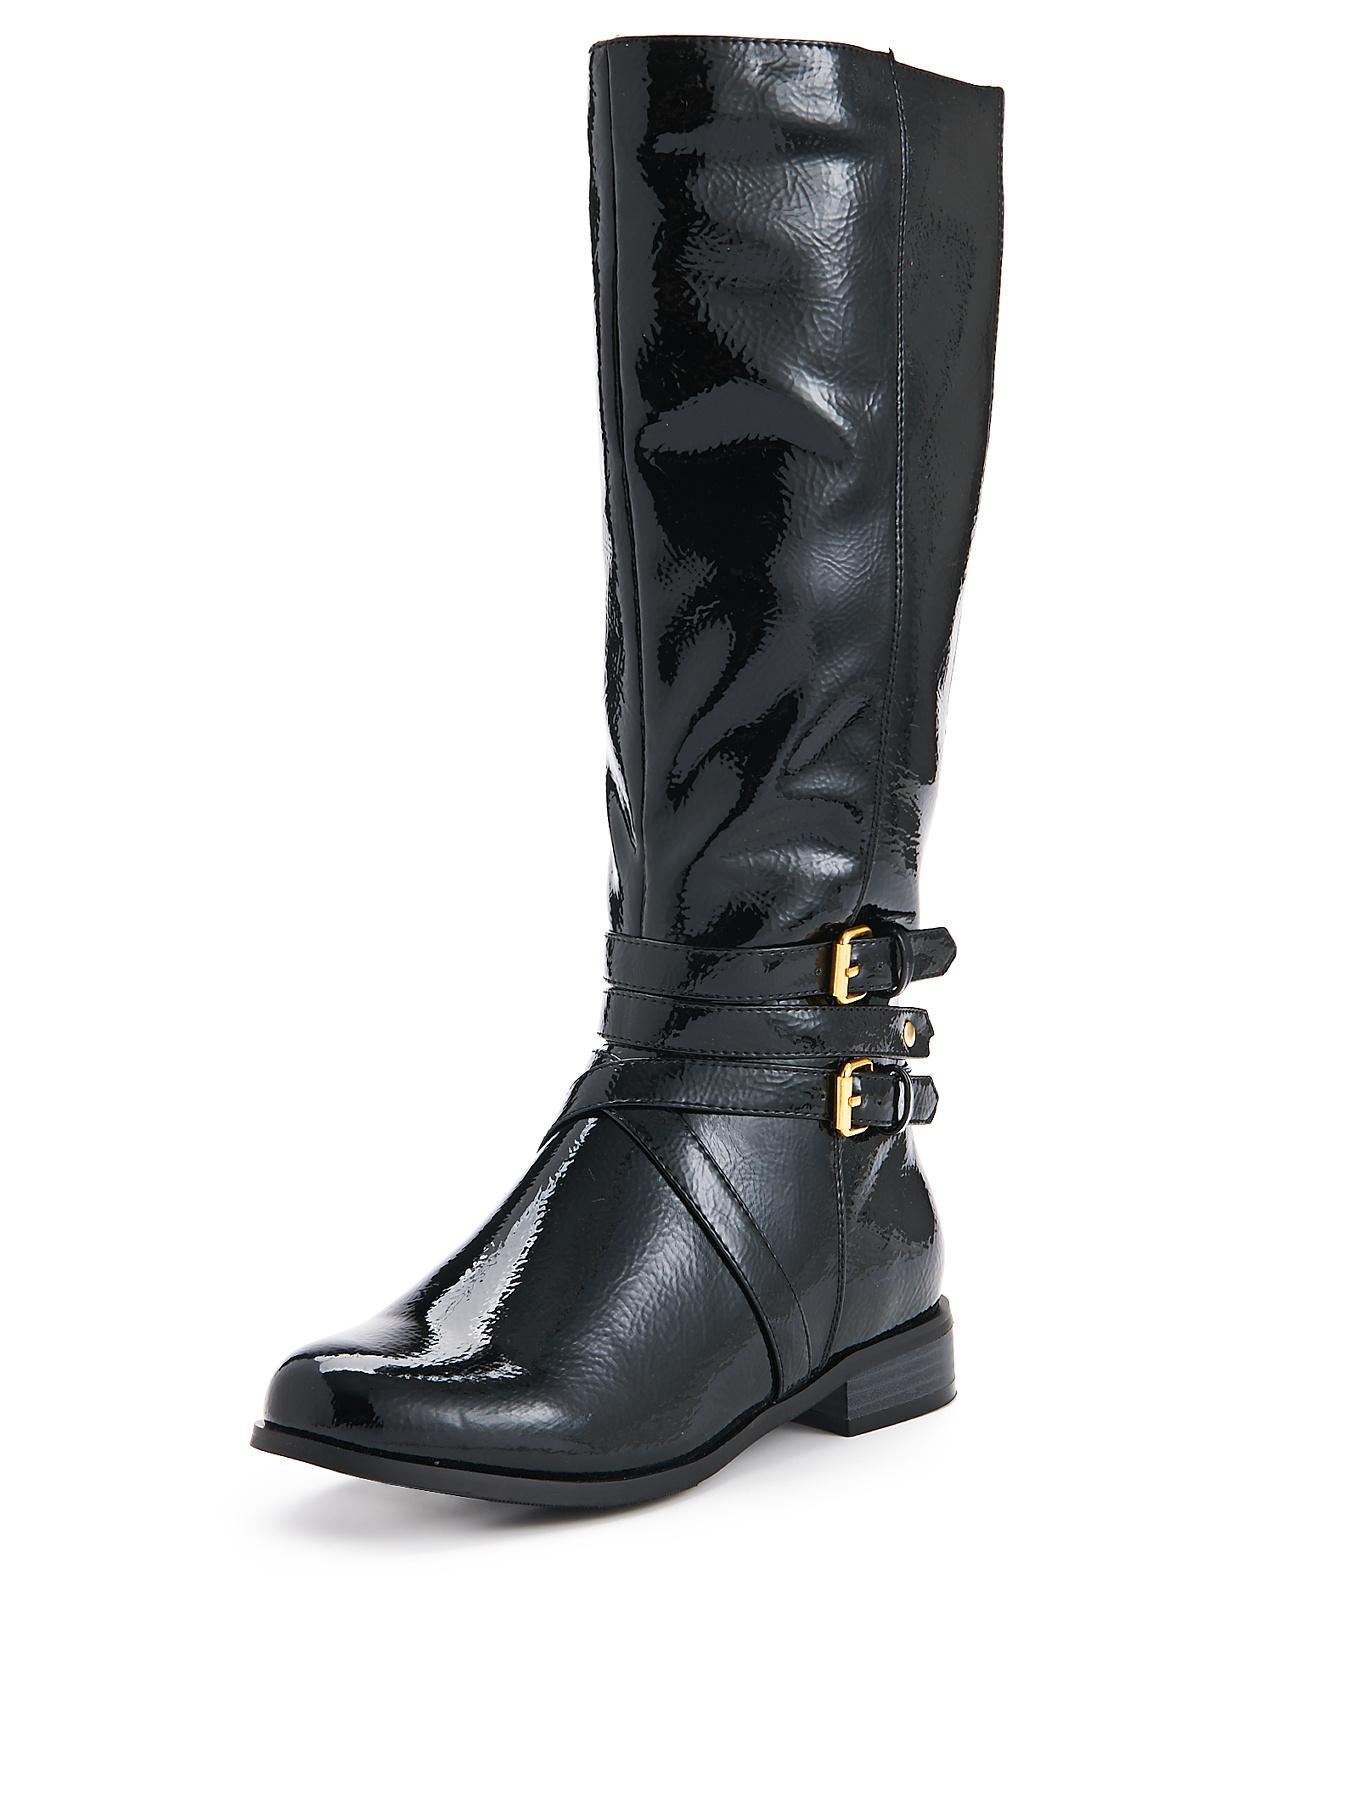 Shoe Box Adelaide Buckle Detail Patent Standard Fit Riding Boot